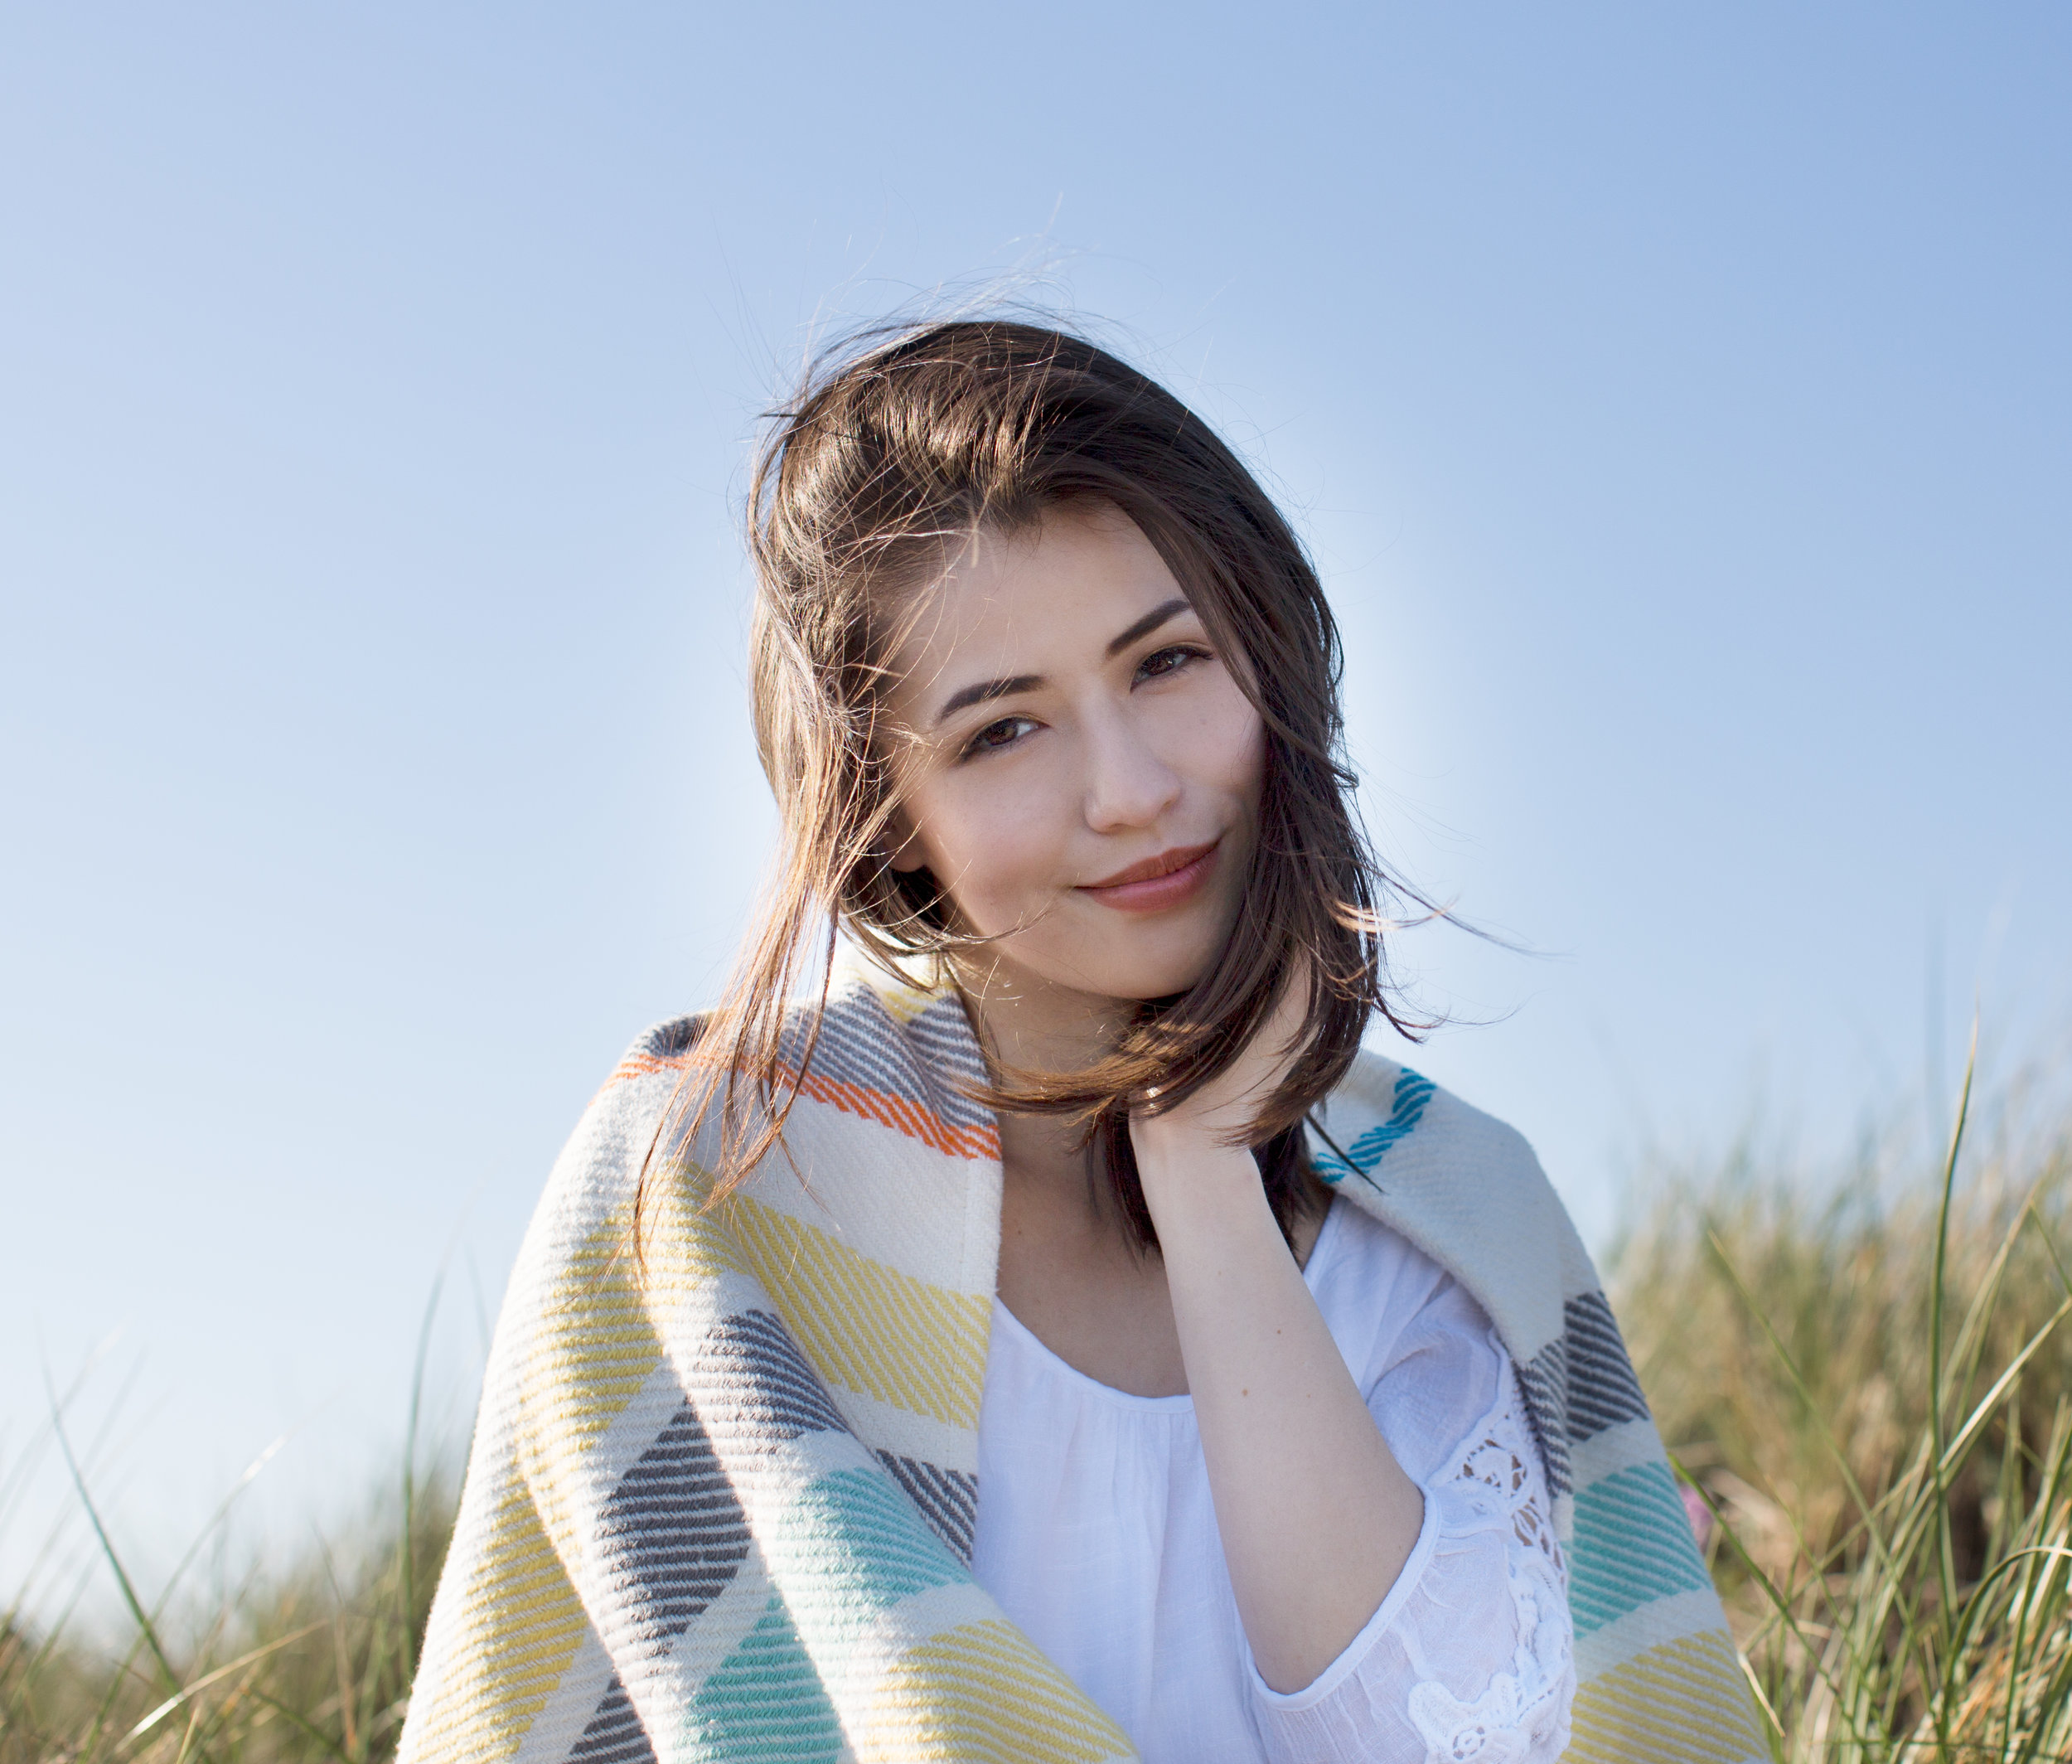 kathleen-barber-photography-cannon beach-portraits